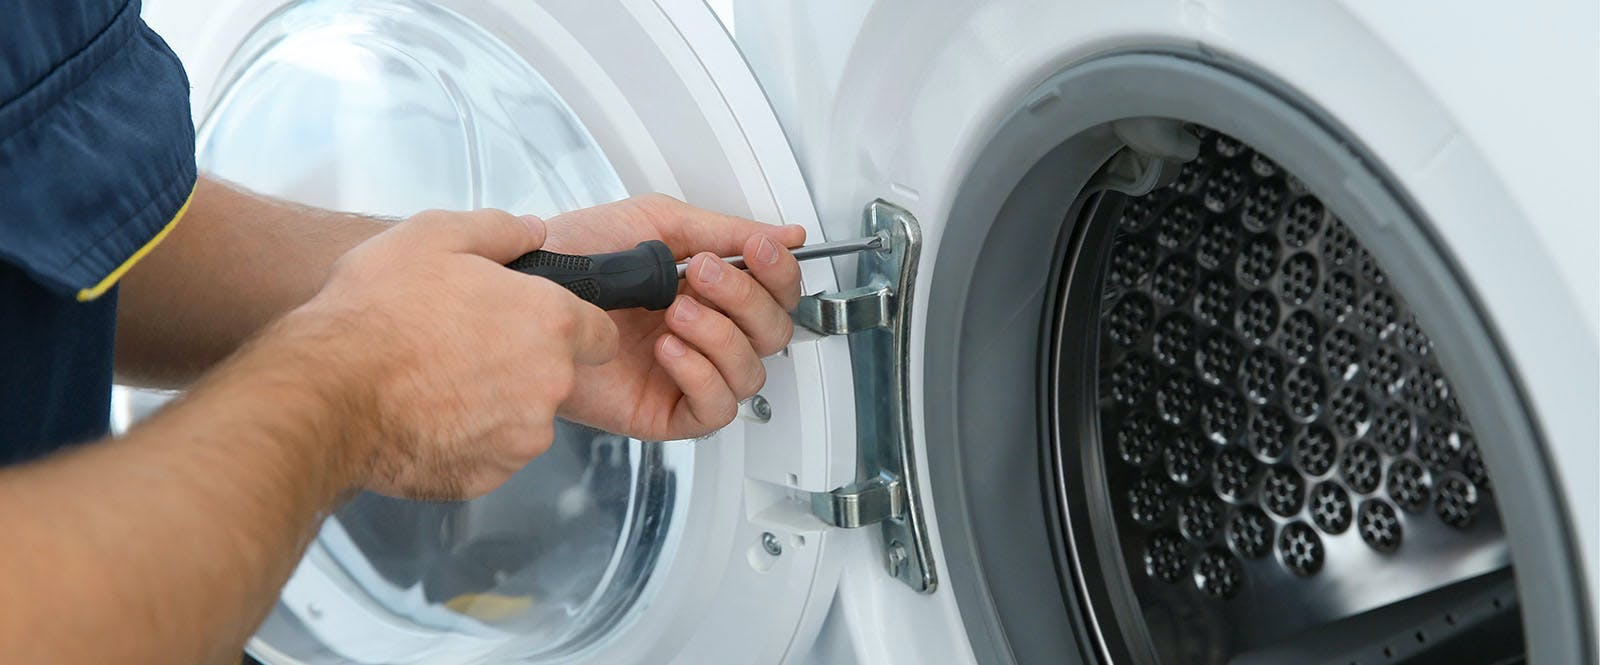 About our appliance installation and repair service